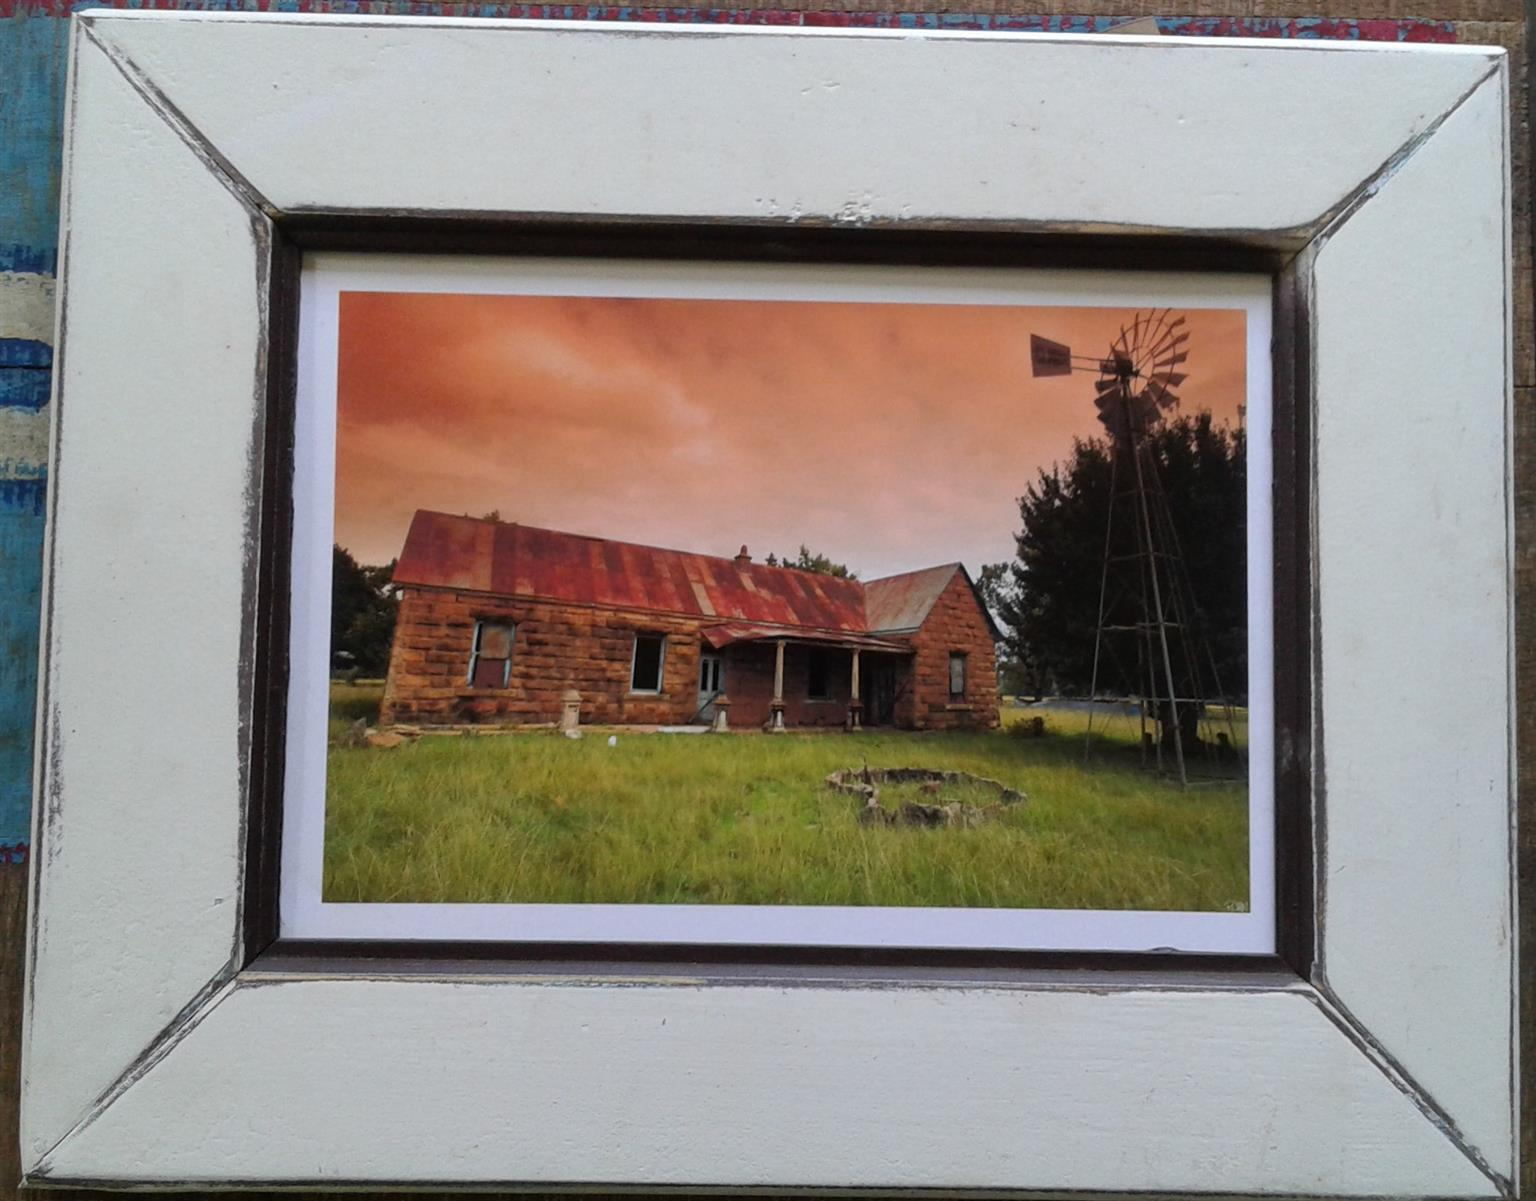 Framed Print: Stoned Cabin. Home decor. Wall Art